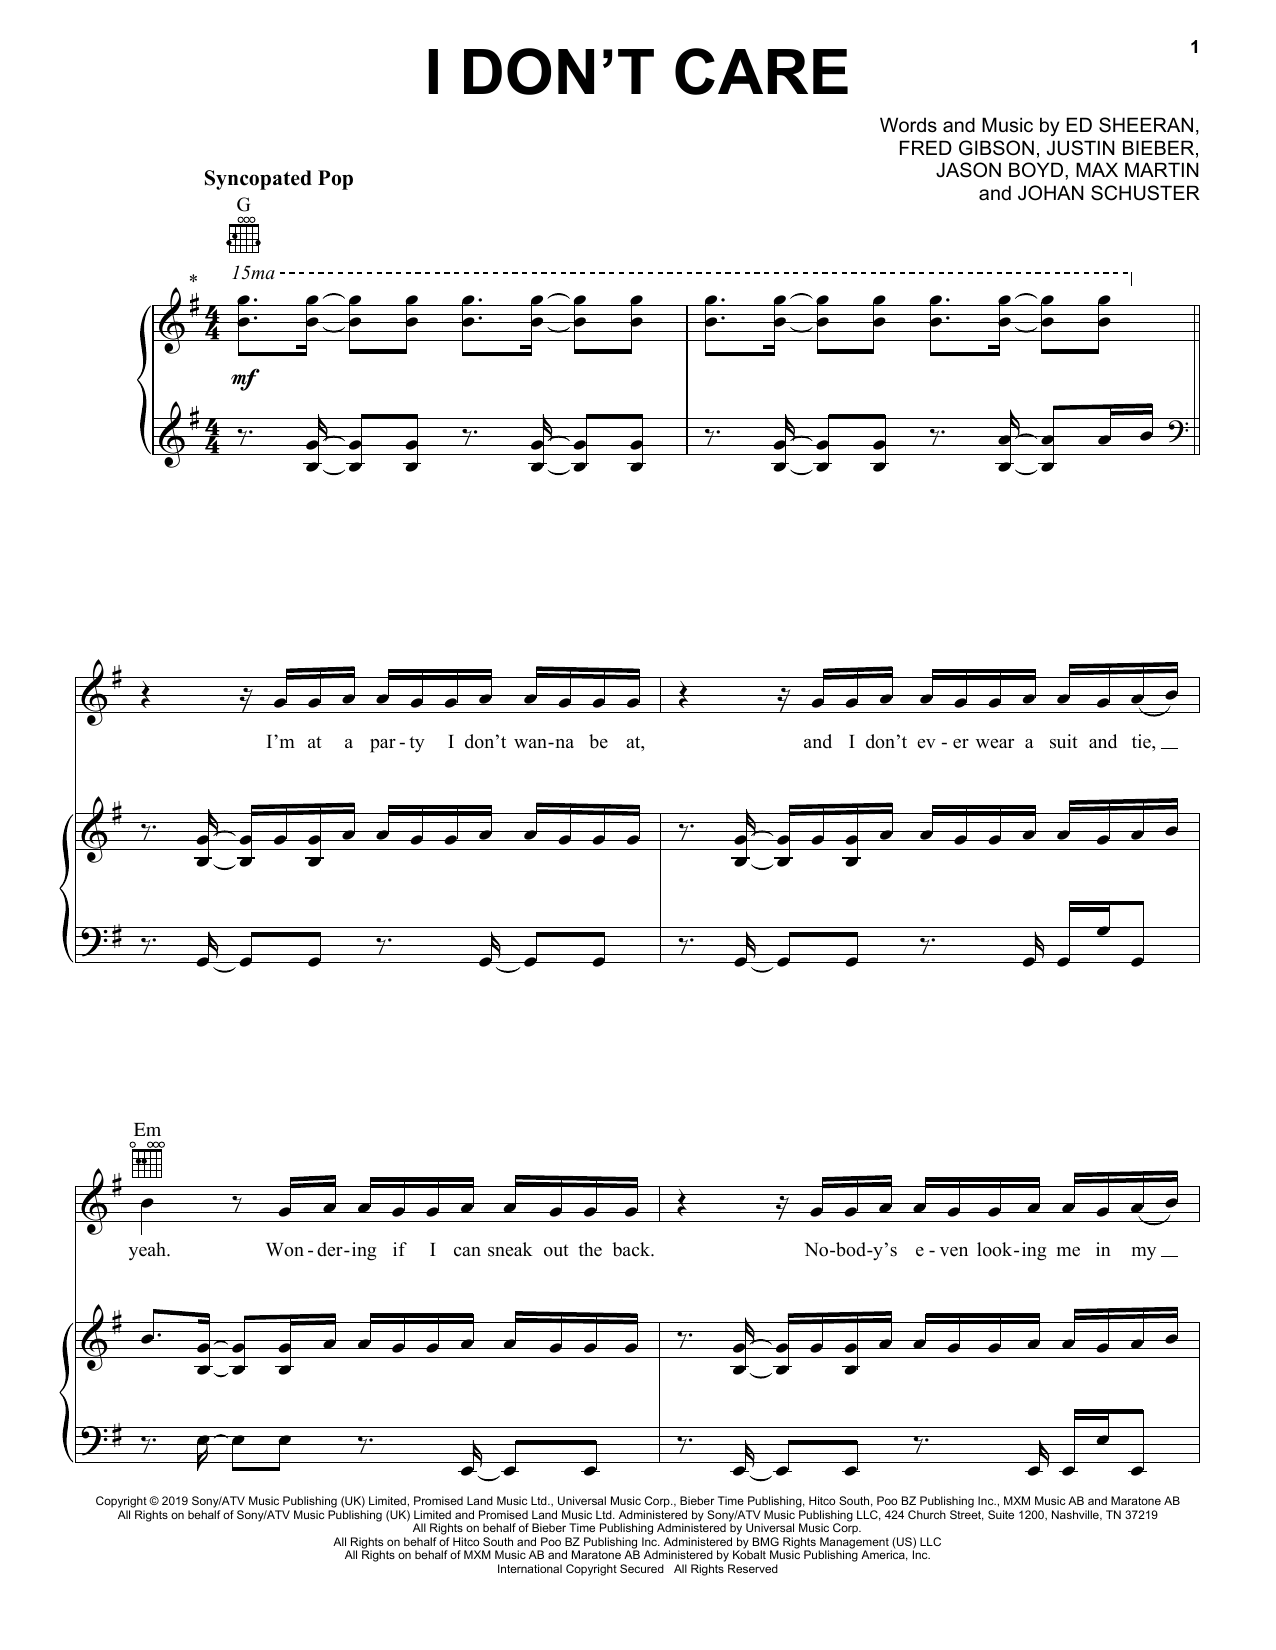 Ed Sheeran & Justin Bieber I Don't Care sheet music notes and chords. Download Printable PDF.